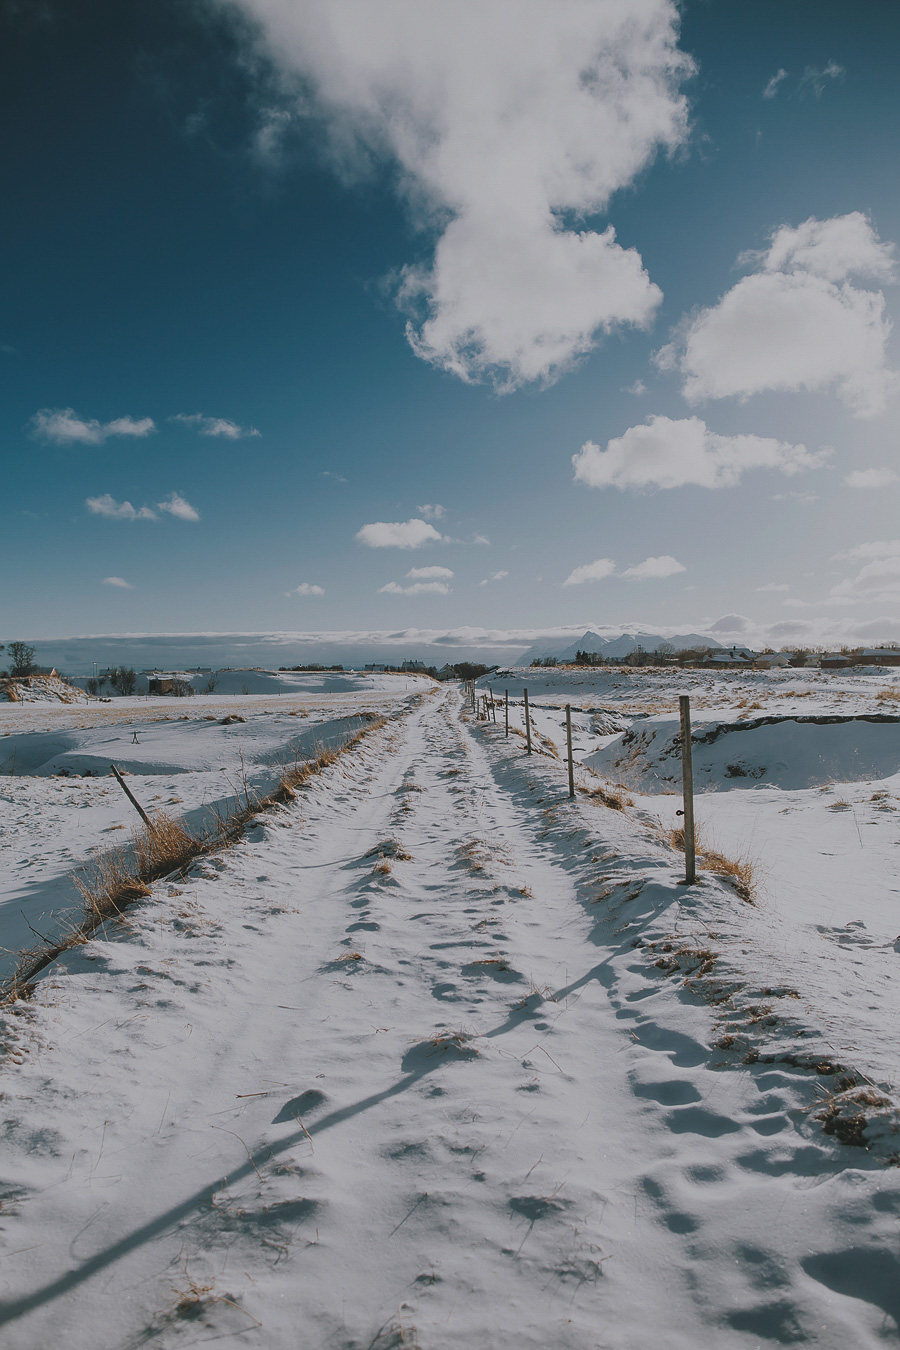 Snowy roads and blue sky